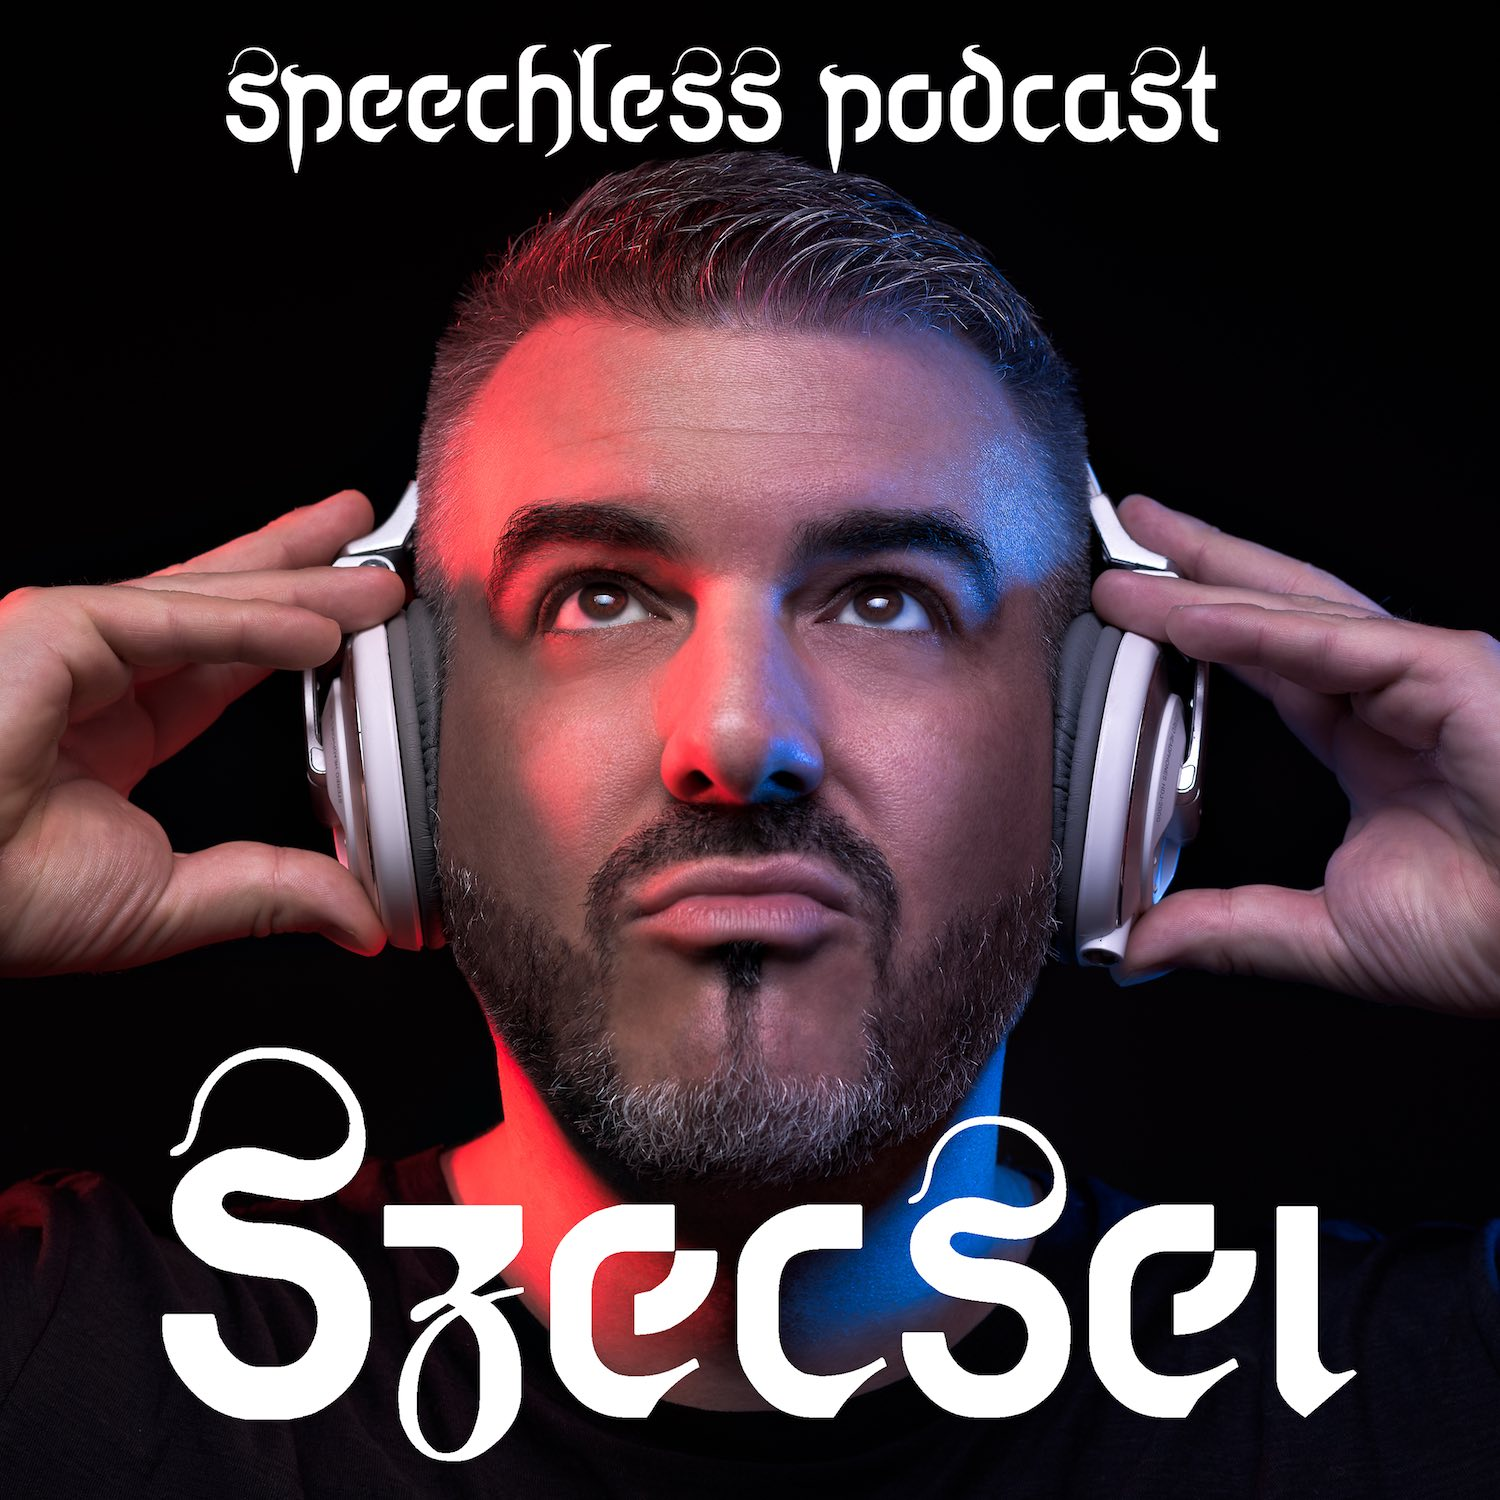 Szecsei Speechless Podcast